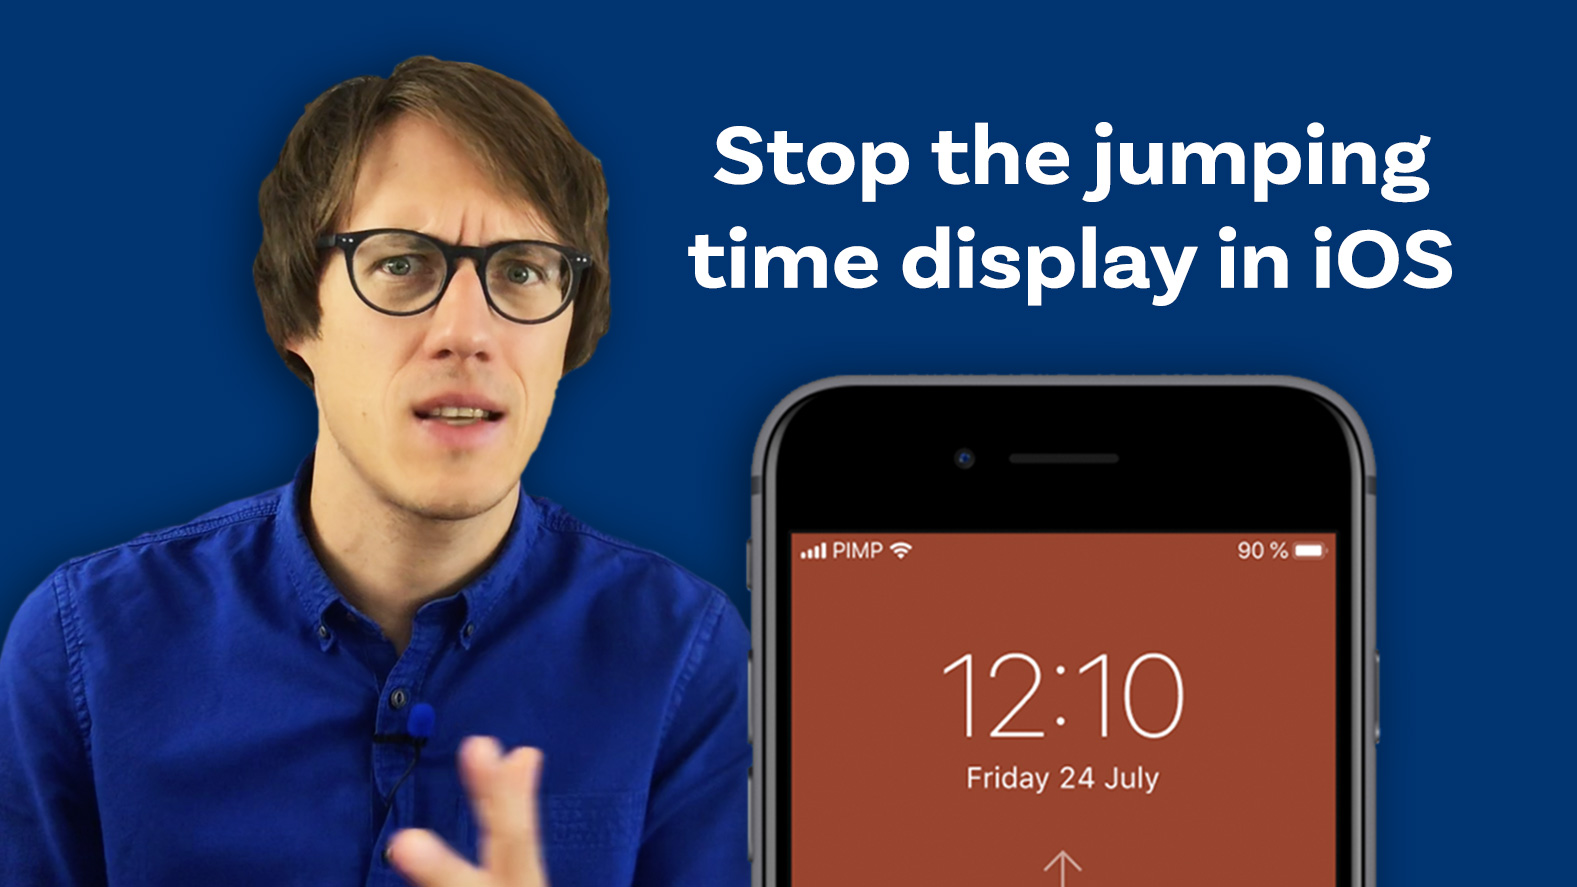 Stop the jumping time display in iOS